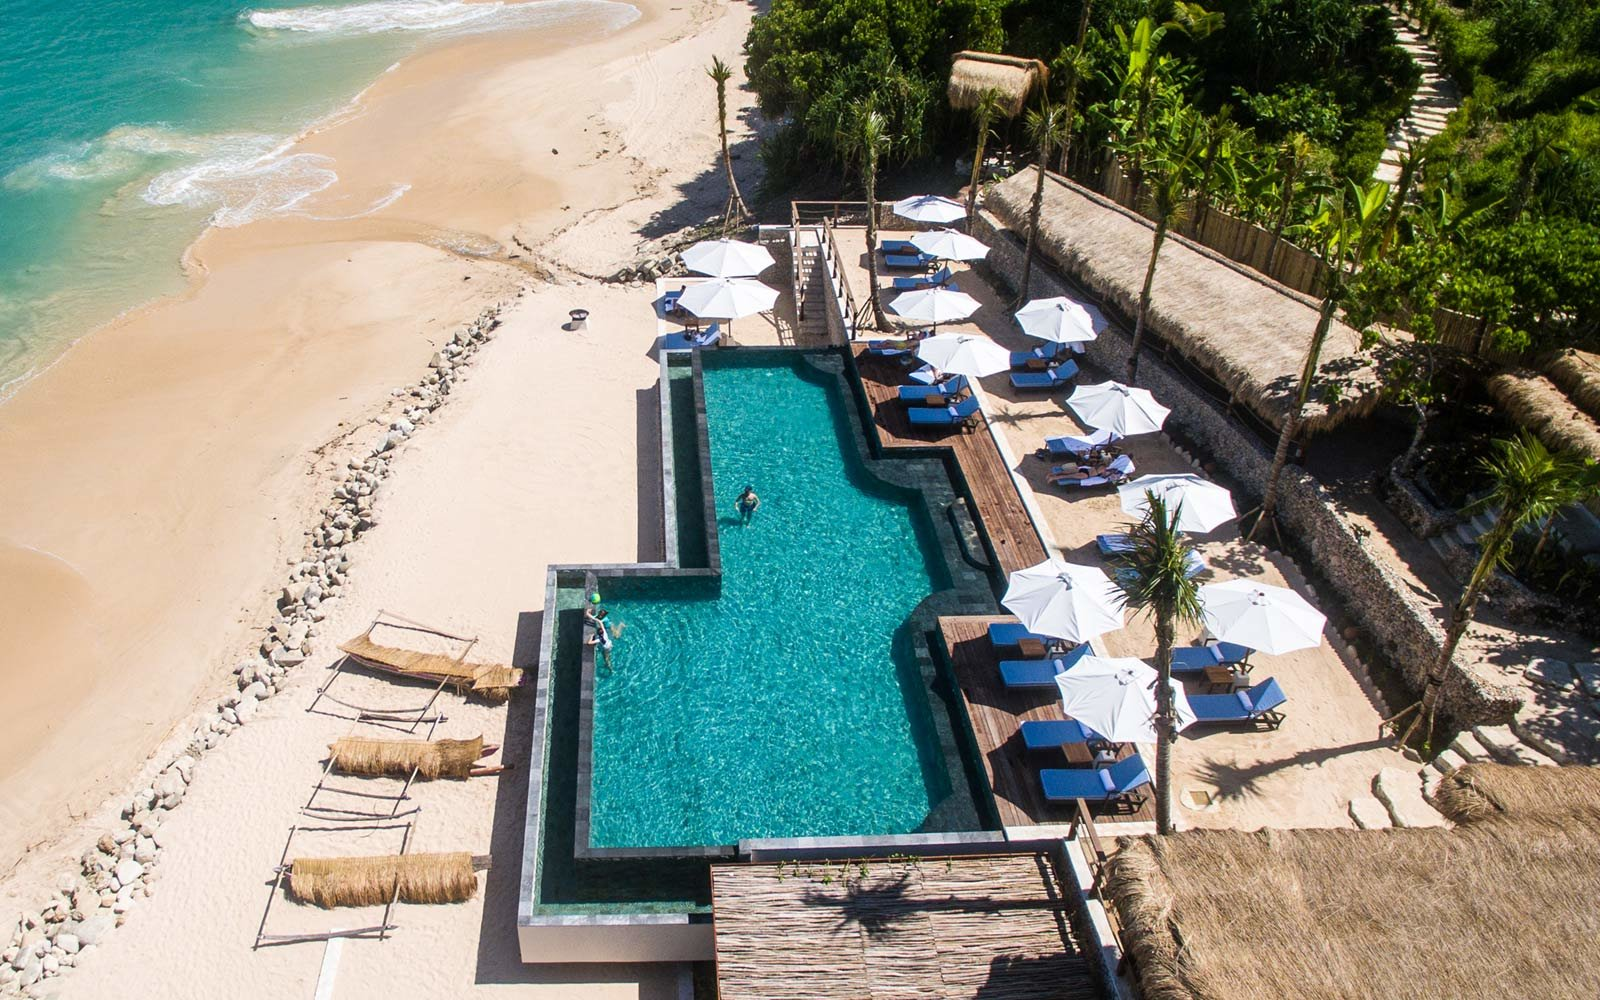 Aerial, Swimming Pool, Nihiwatu, Sumba, Indonesia